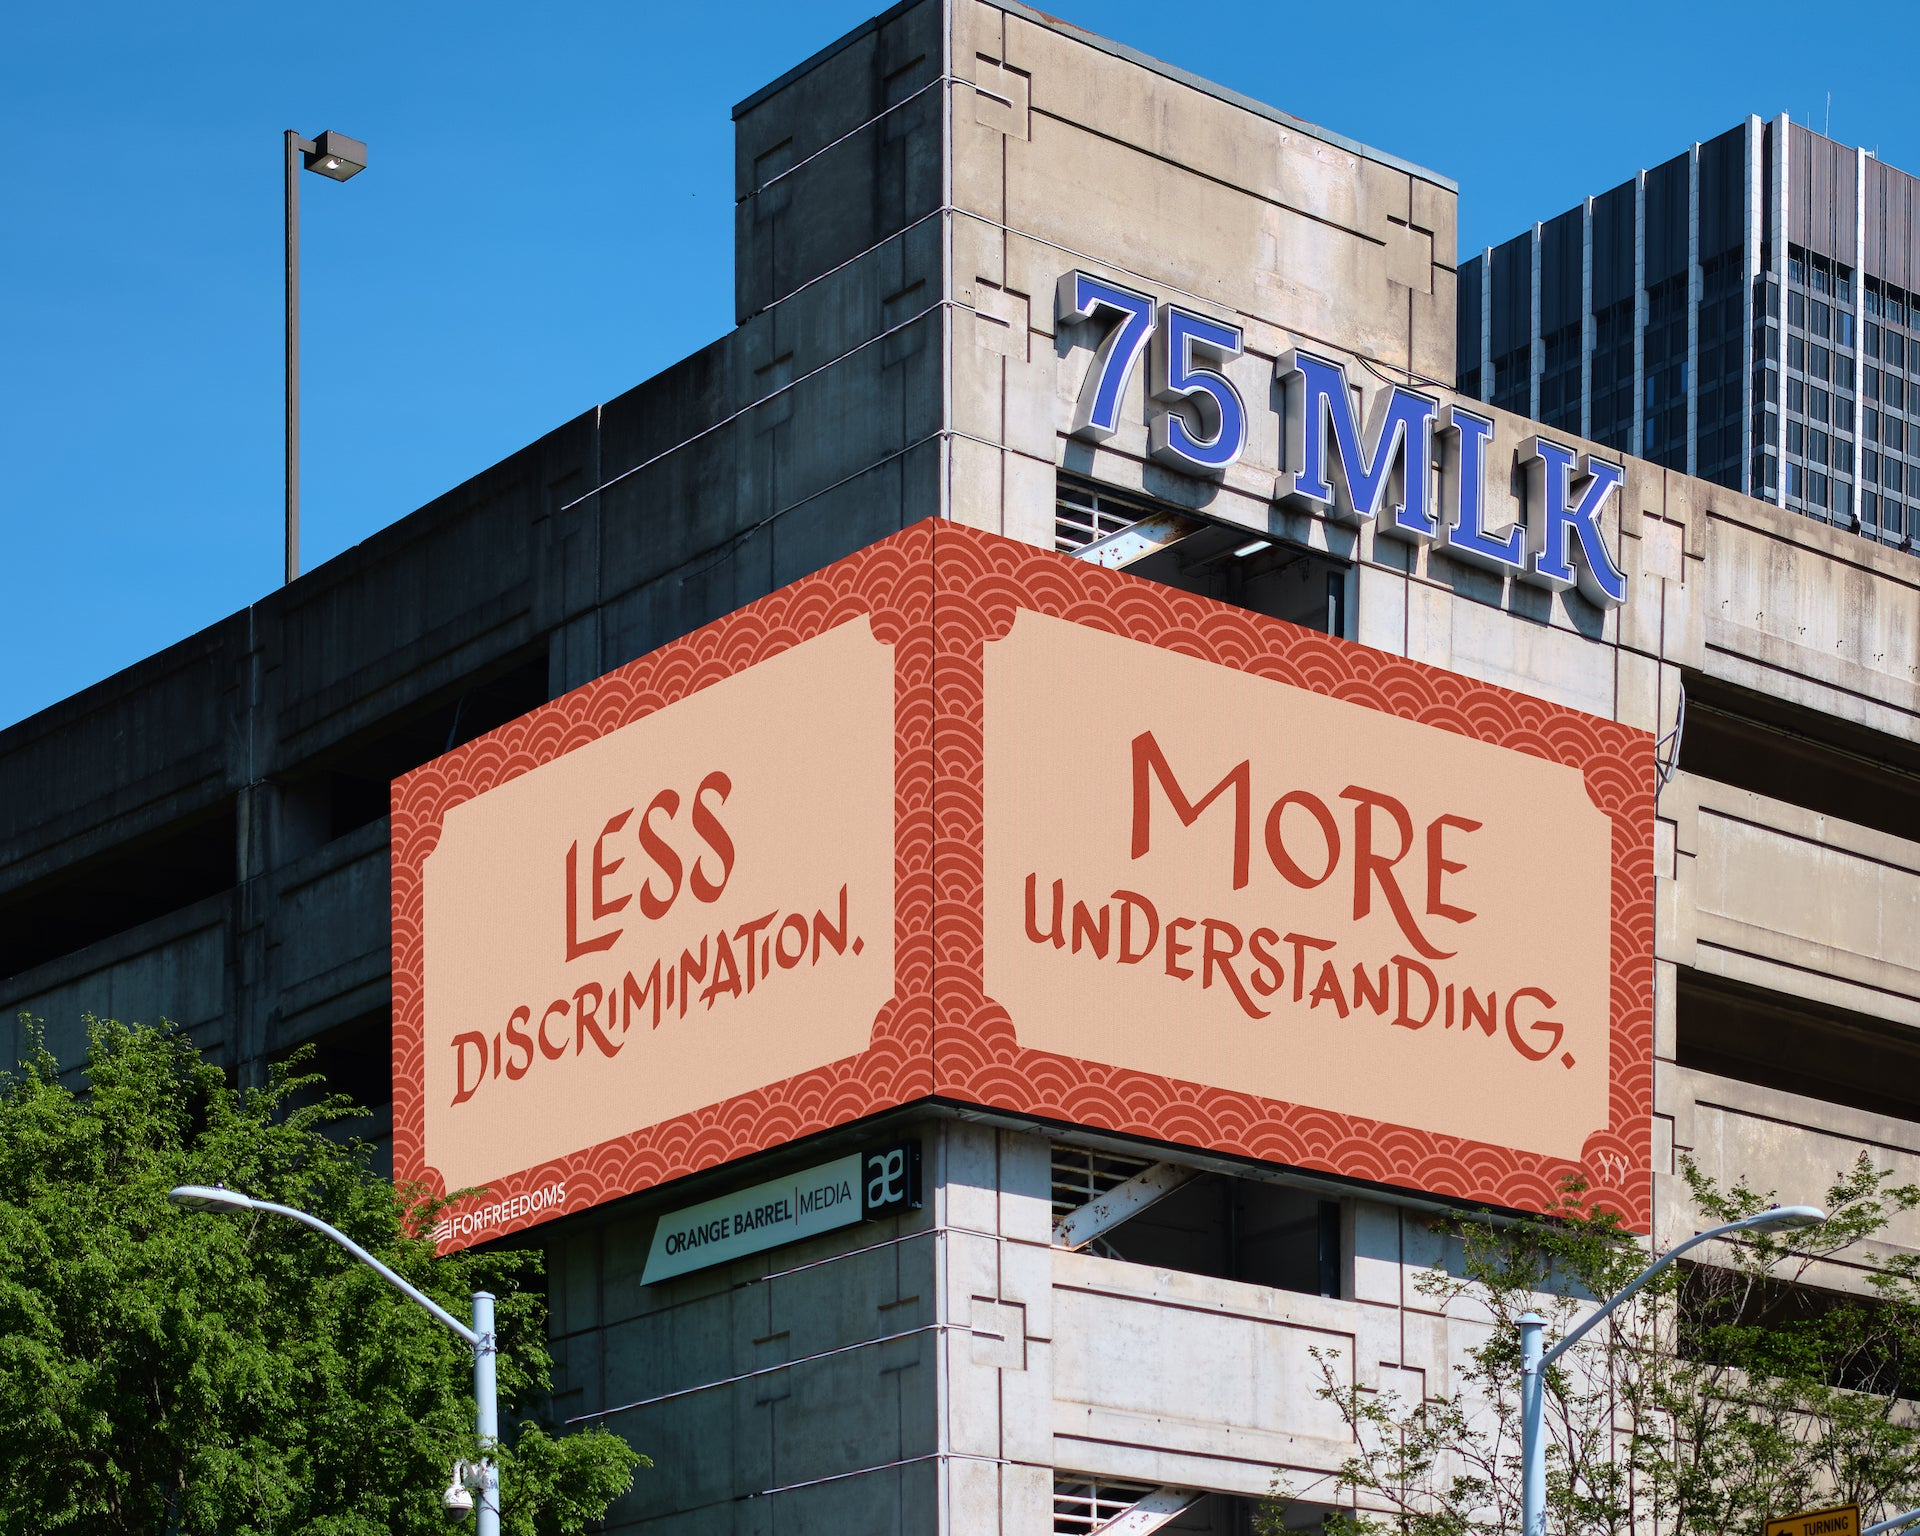 Designed by artist San Francisco artist Christine Wong Yap, this billboard is installed on Martin Luther King Jr. Drive in Atlanta. Photo © For Freedoms